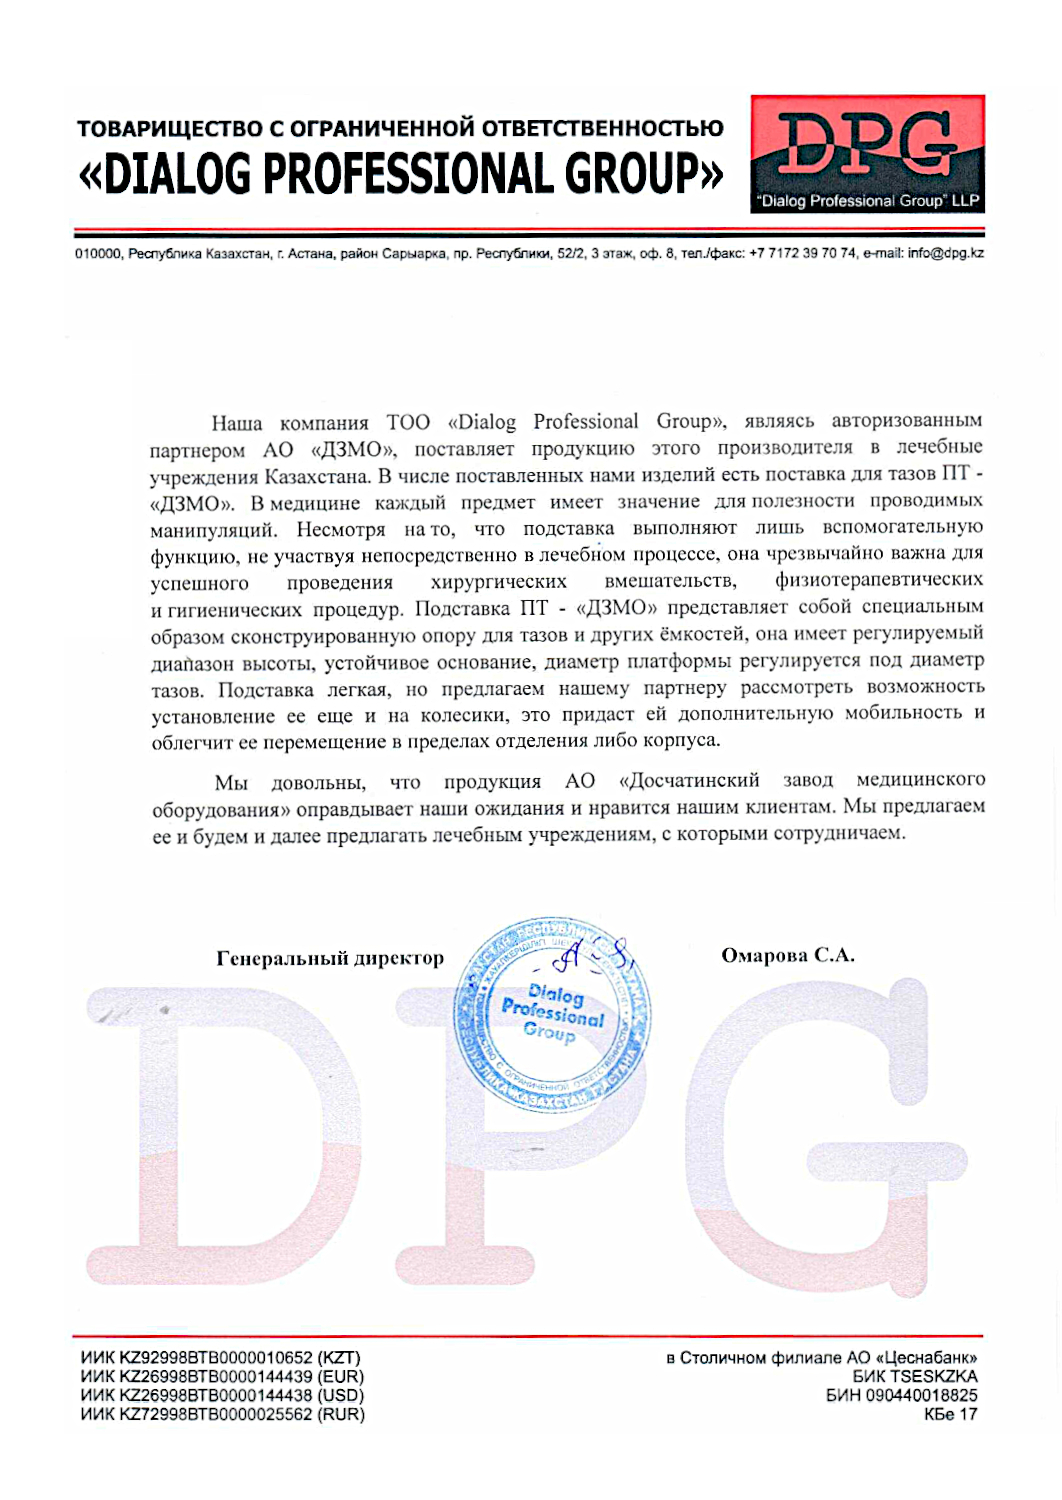 "TOO ""Dialog Professional Group"", Республика Казахстан, Астана"